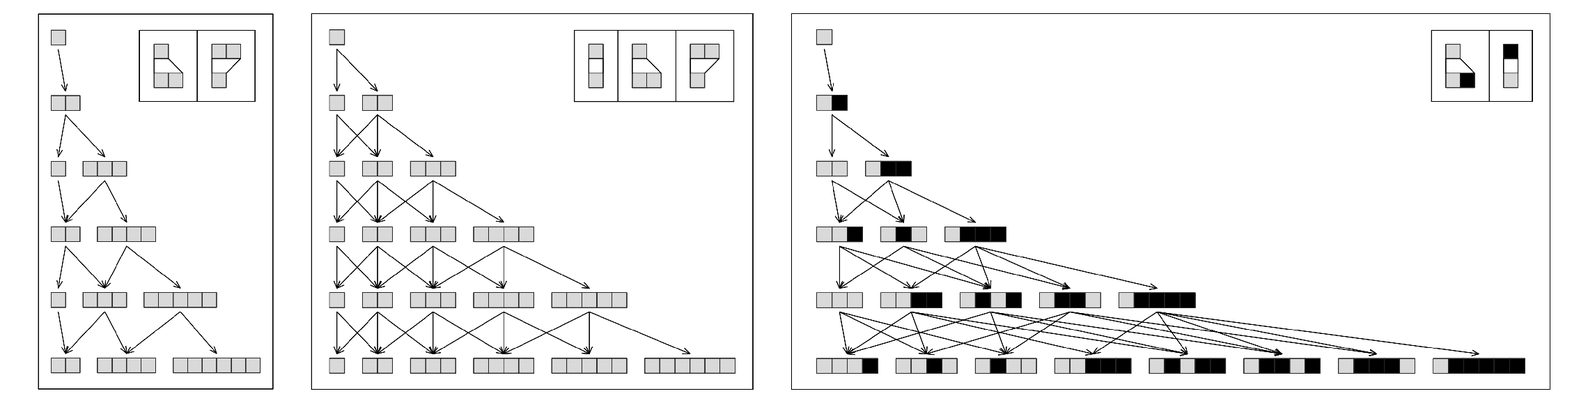 Examples of simple multiway systems